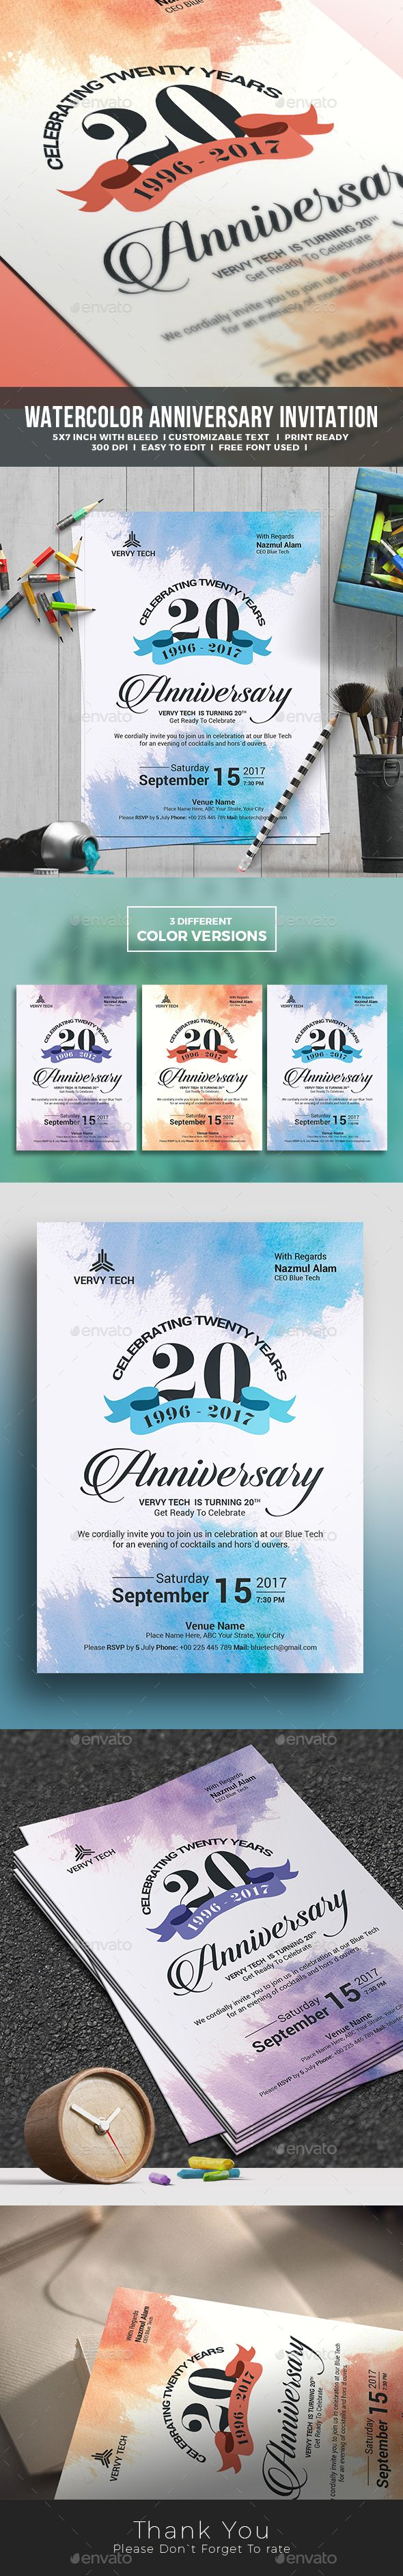 Water Color Anniversary Invitation Template Design for Corporate and Formal Invitation- Anniversary Greeting Cards Download https://graphicriver.net/item/anniversary-invitation/18525254?ref=themedevisers